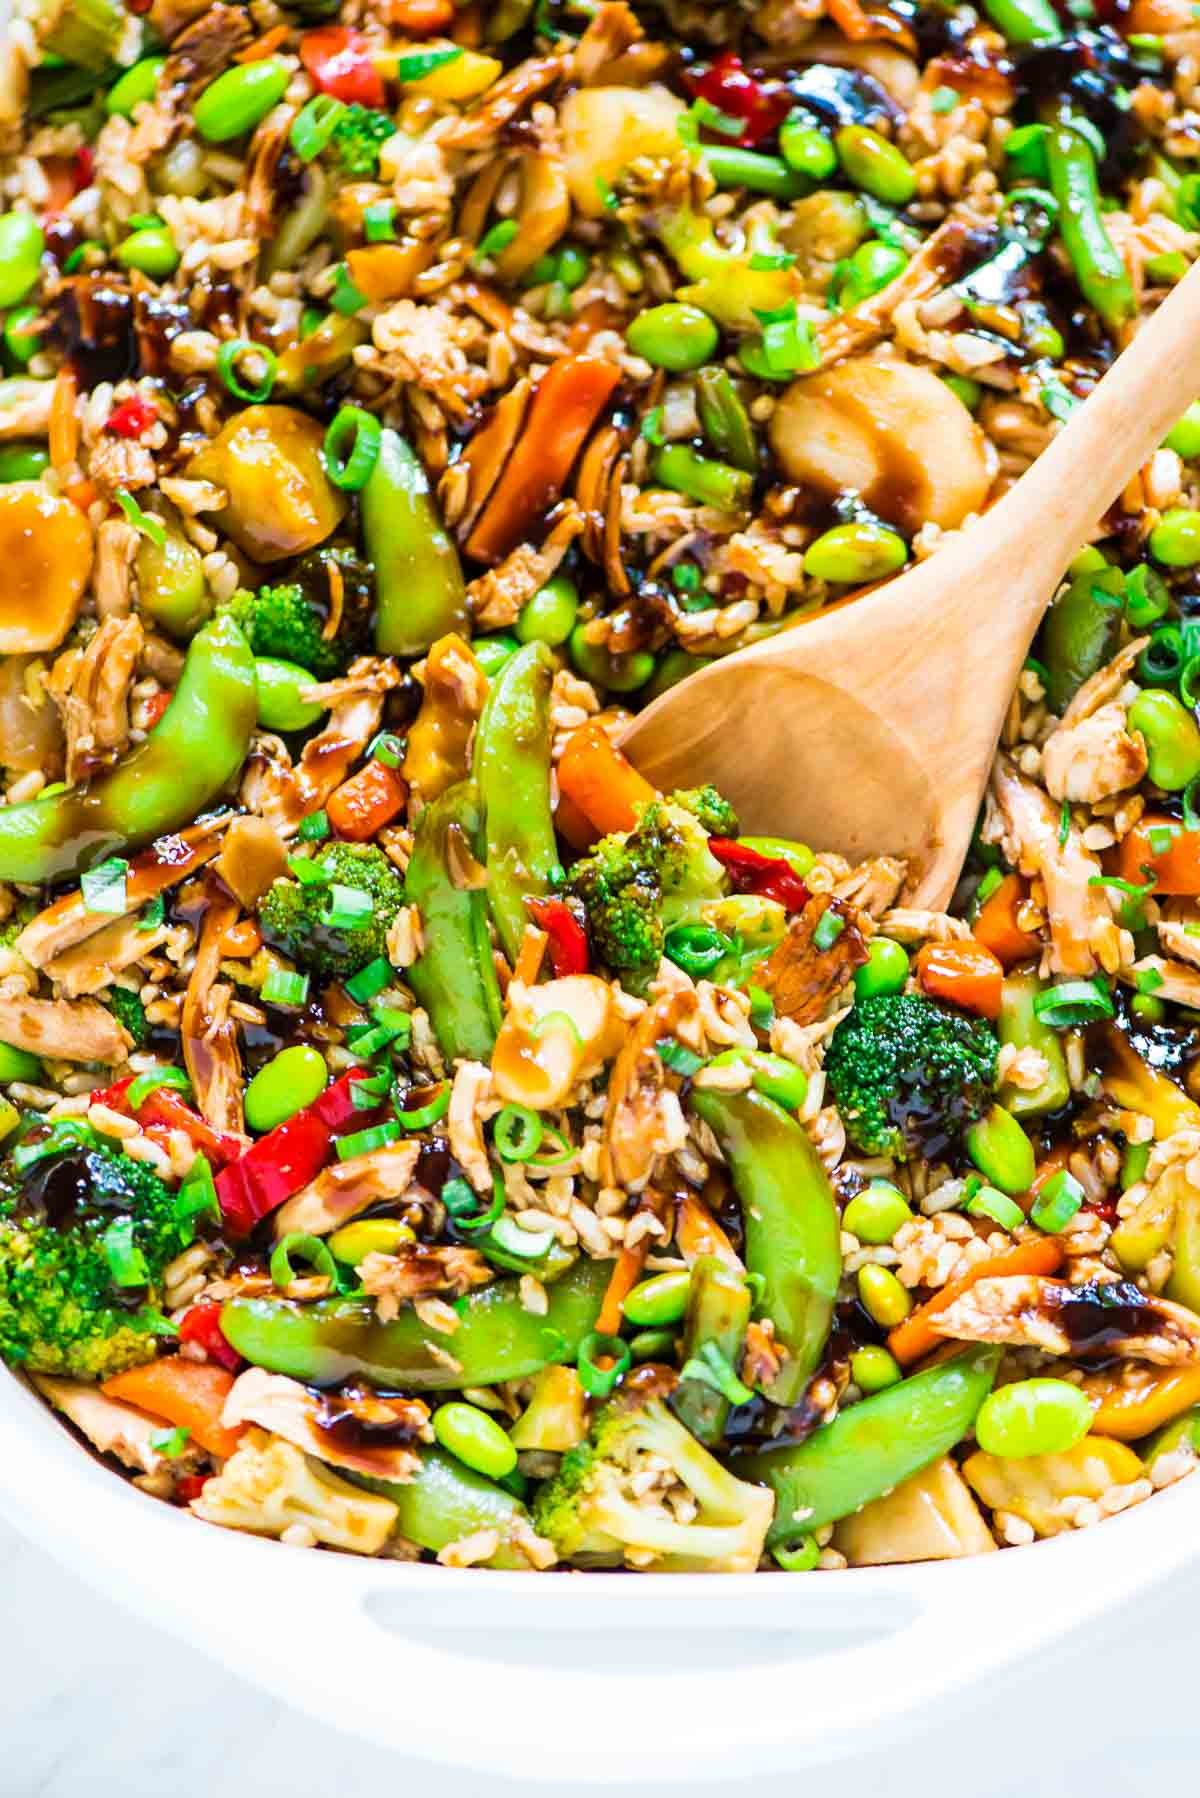 Teriyaki Chicken Casserole recipe — an easy, healthy meal that's perfect for busy weeknights. Everything cooks together in one dish, even the chicken! @wellplated